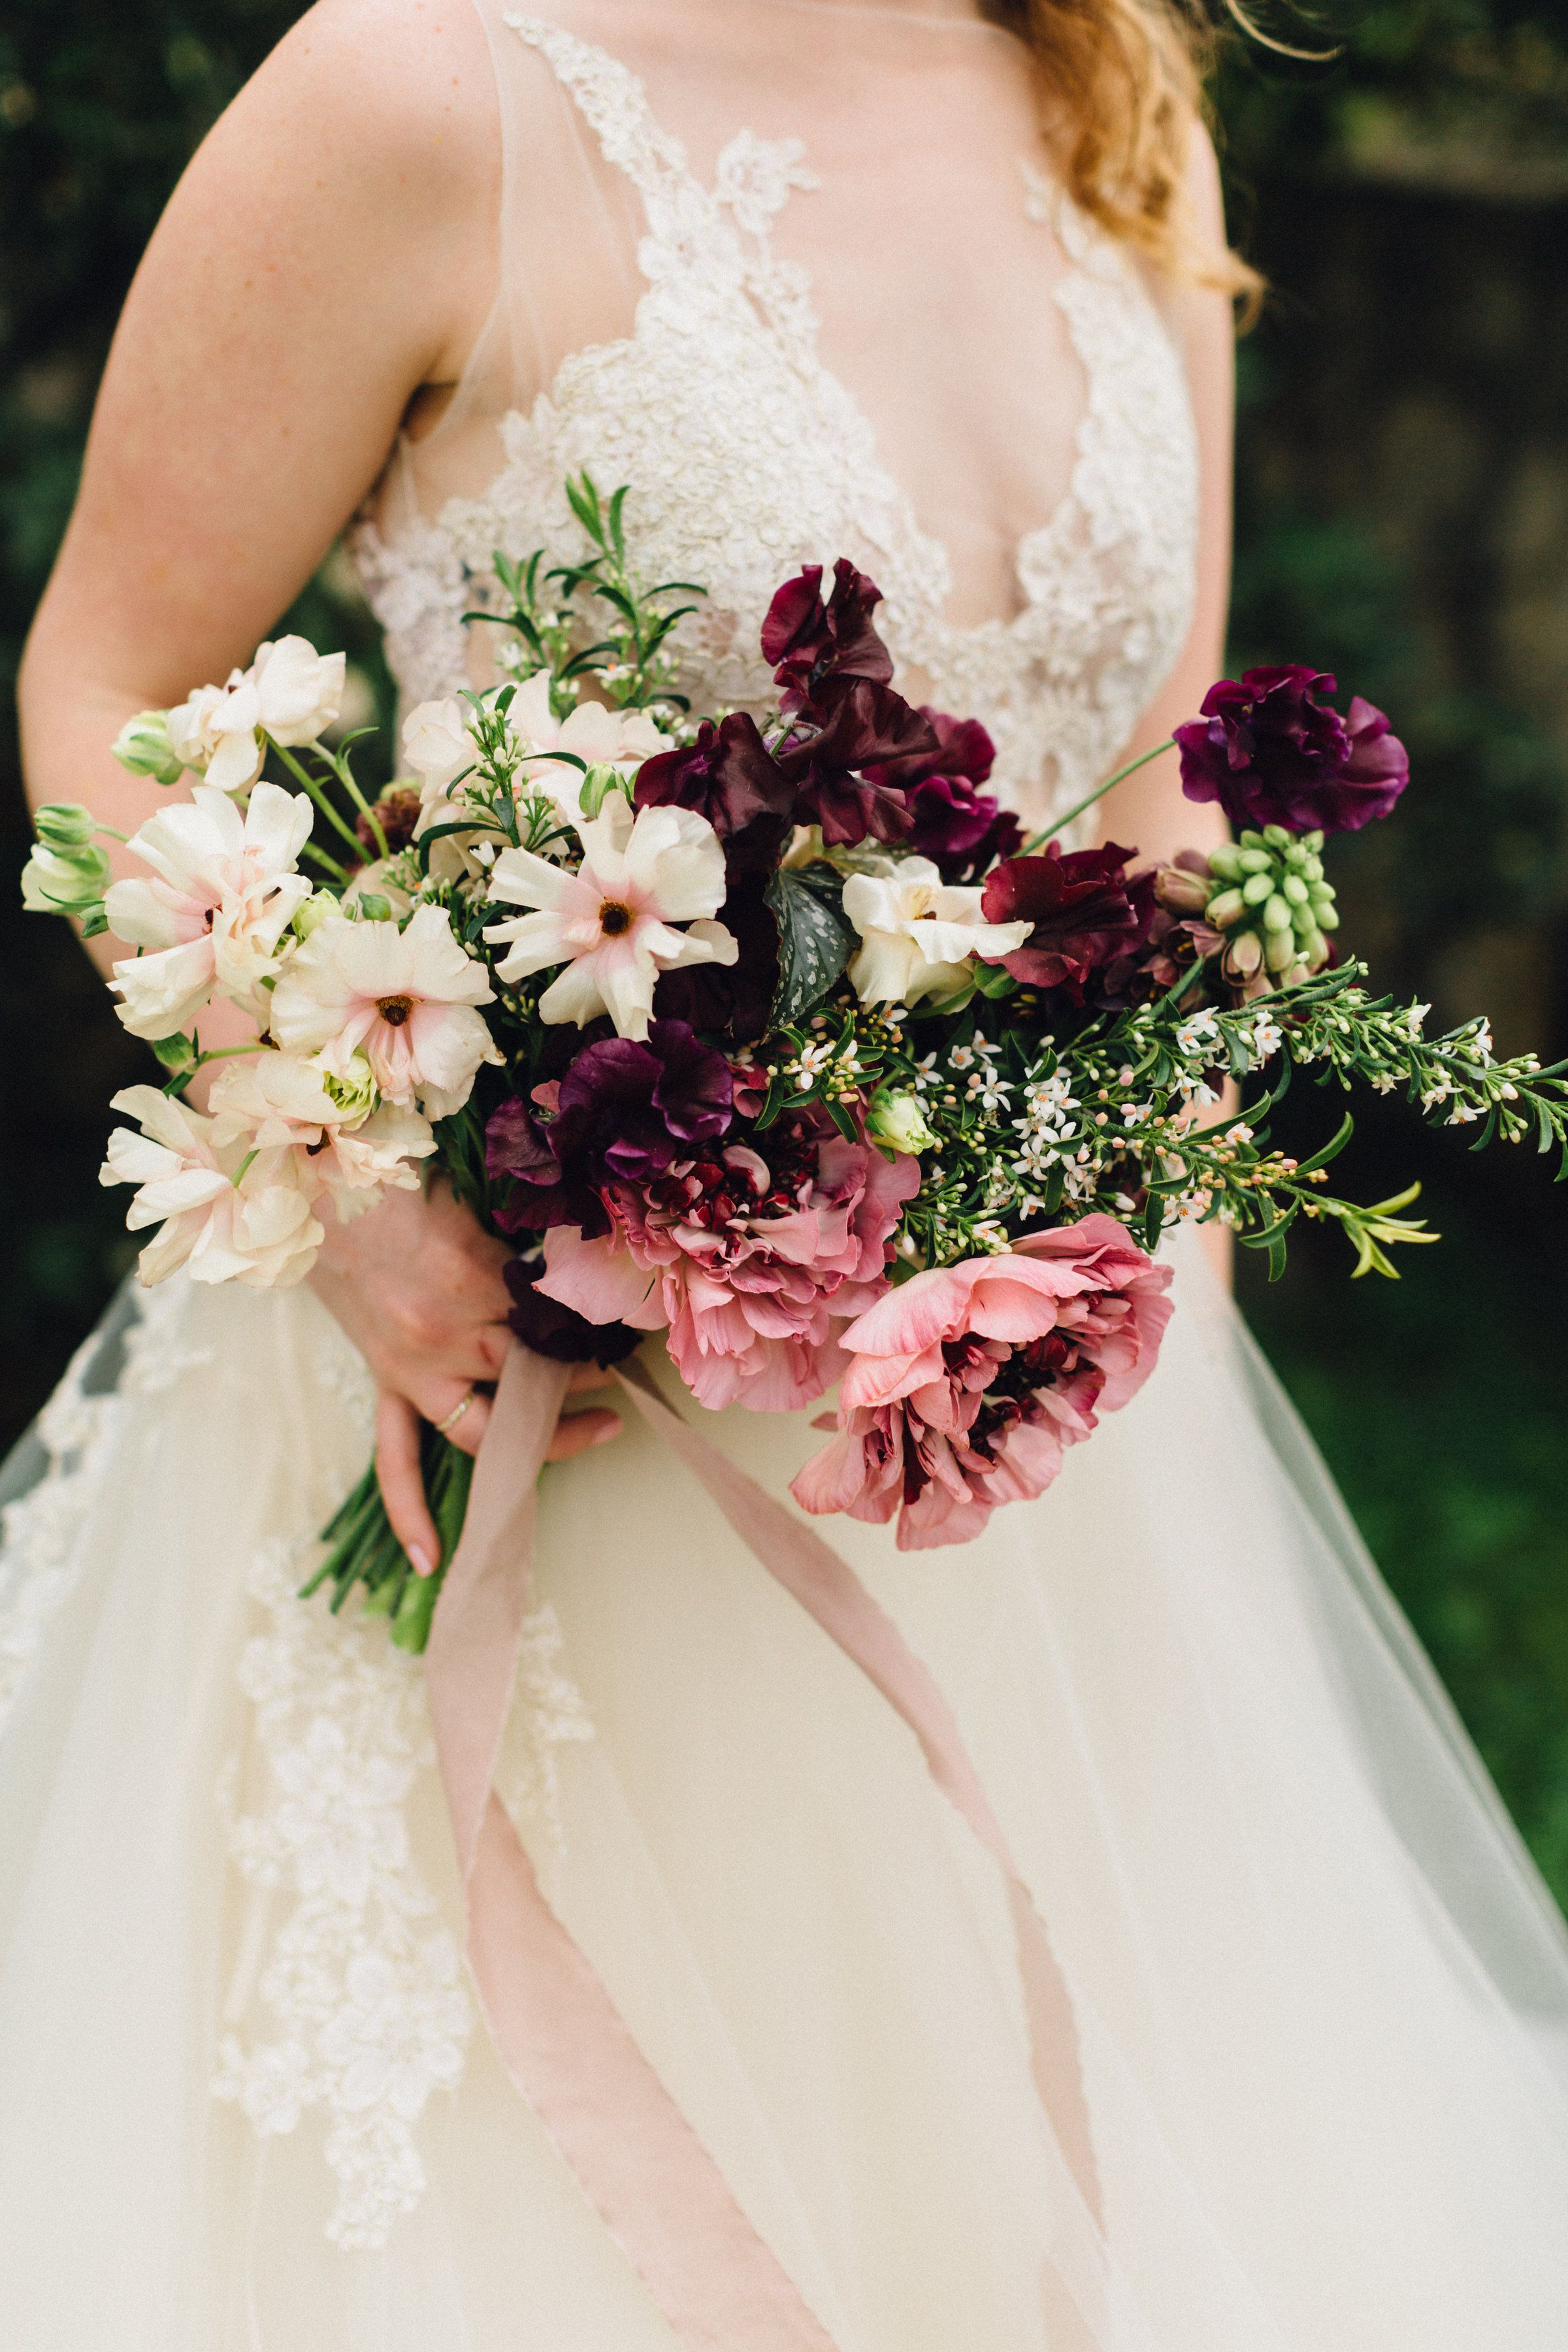 The greenhouse collective - Floral By Color Theory Collective Romantic Bouquet In Shades Of Plum Pink Mauve